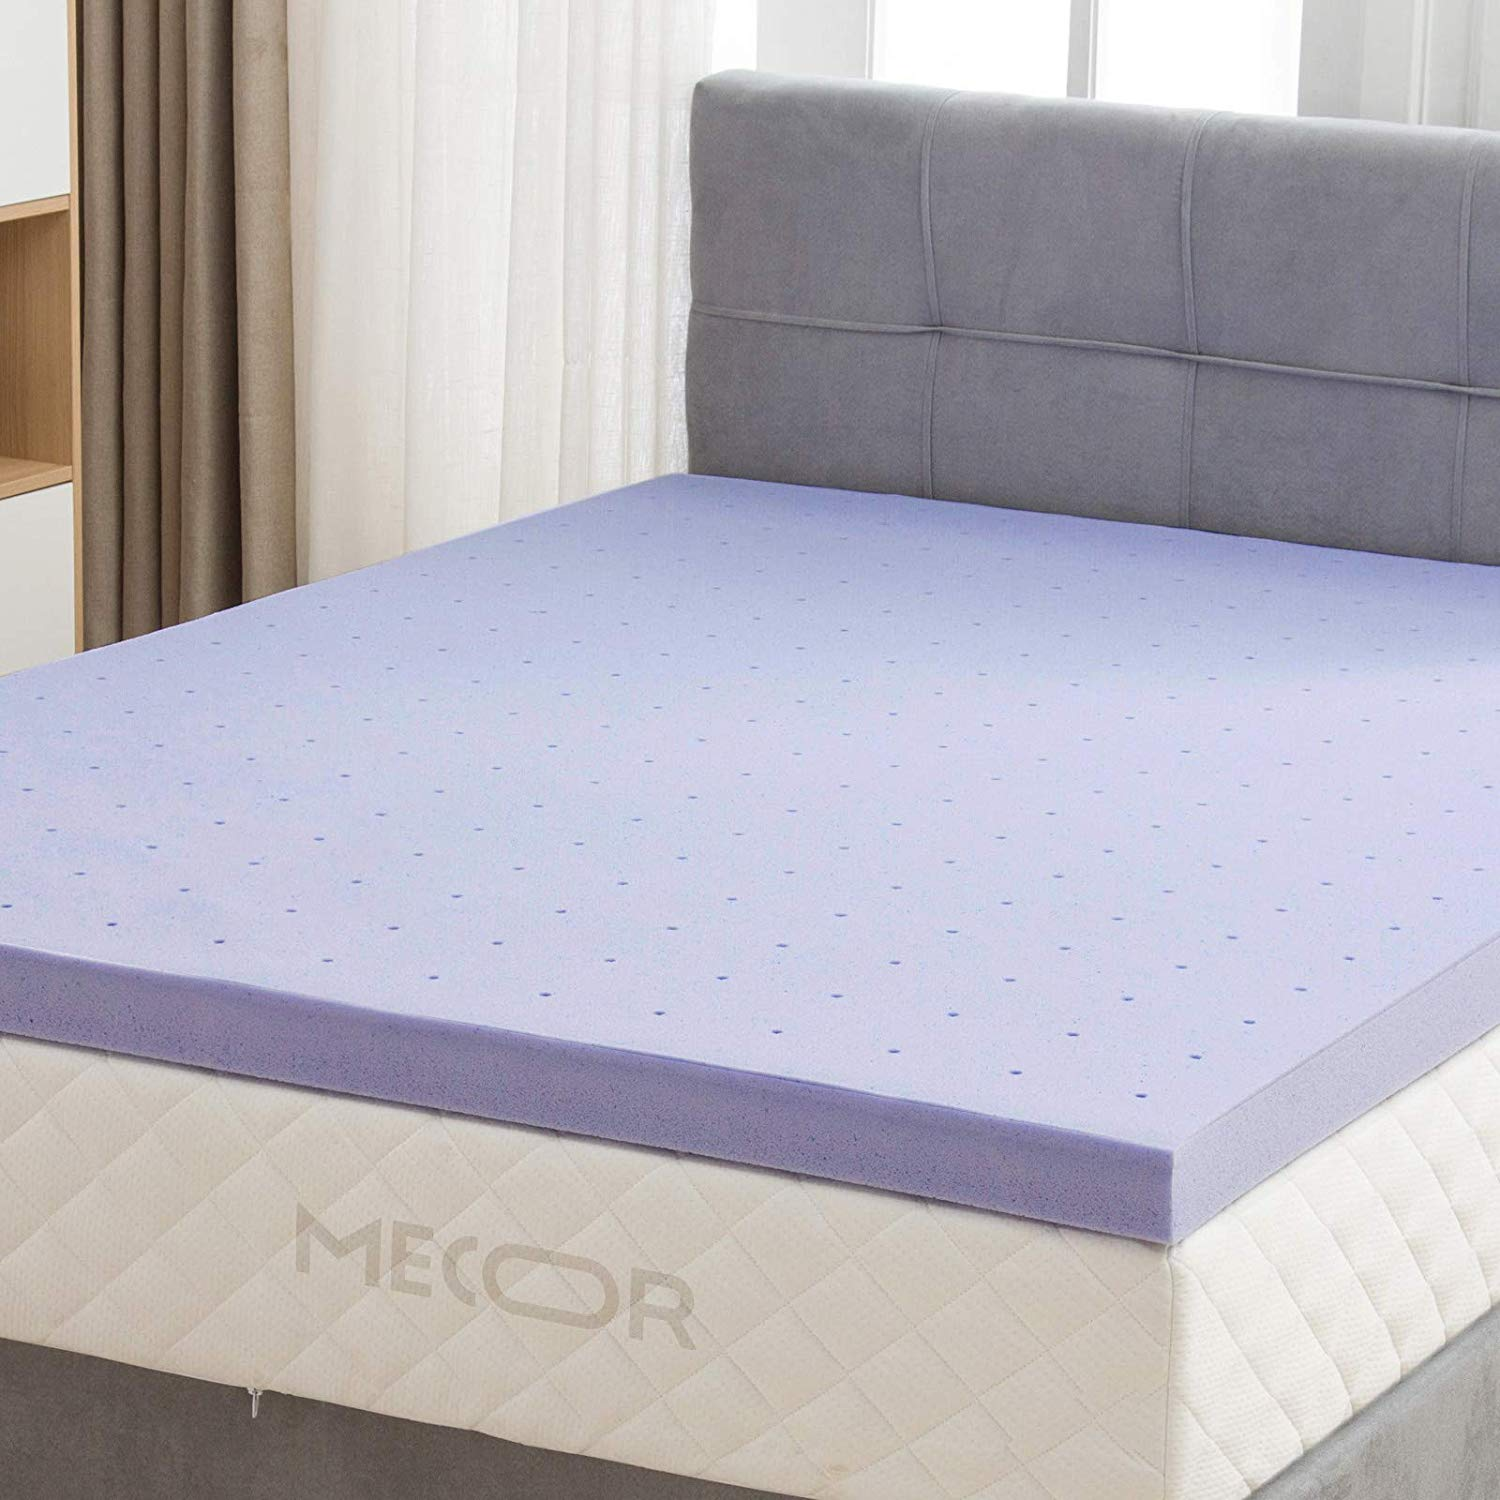 "Mecor 4 Inch 4"" Queen Size Gel Infused Memory Foam Mattress Topper"